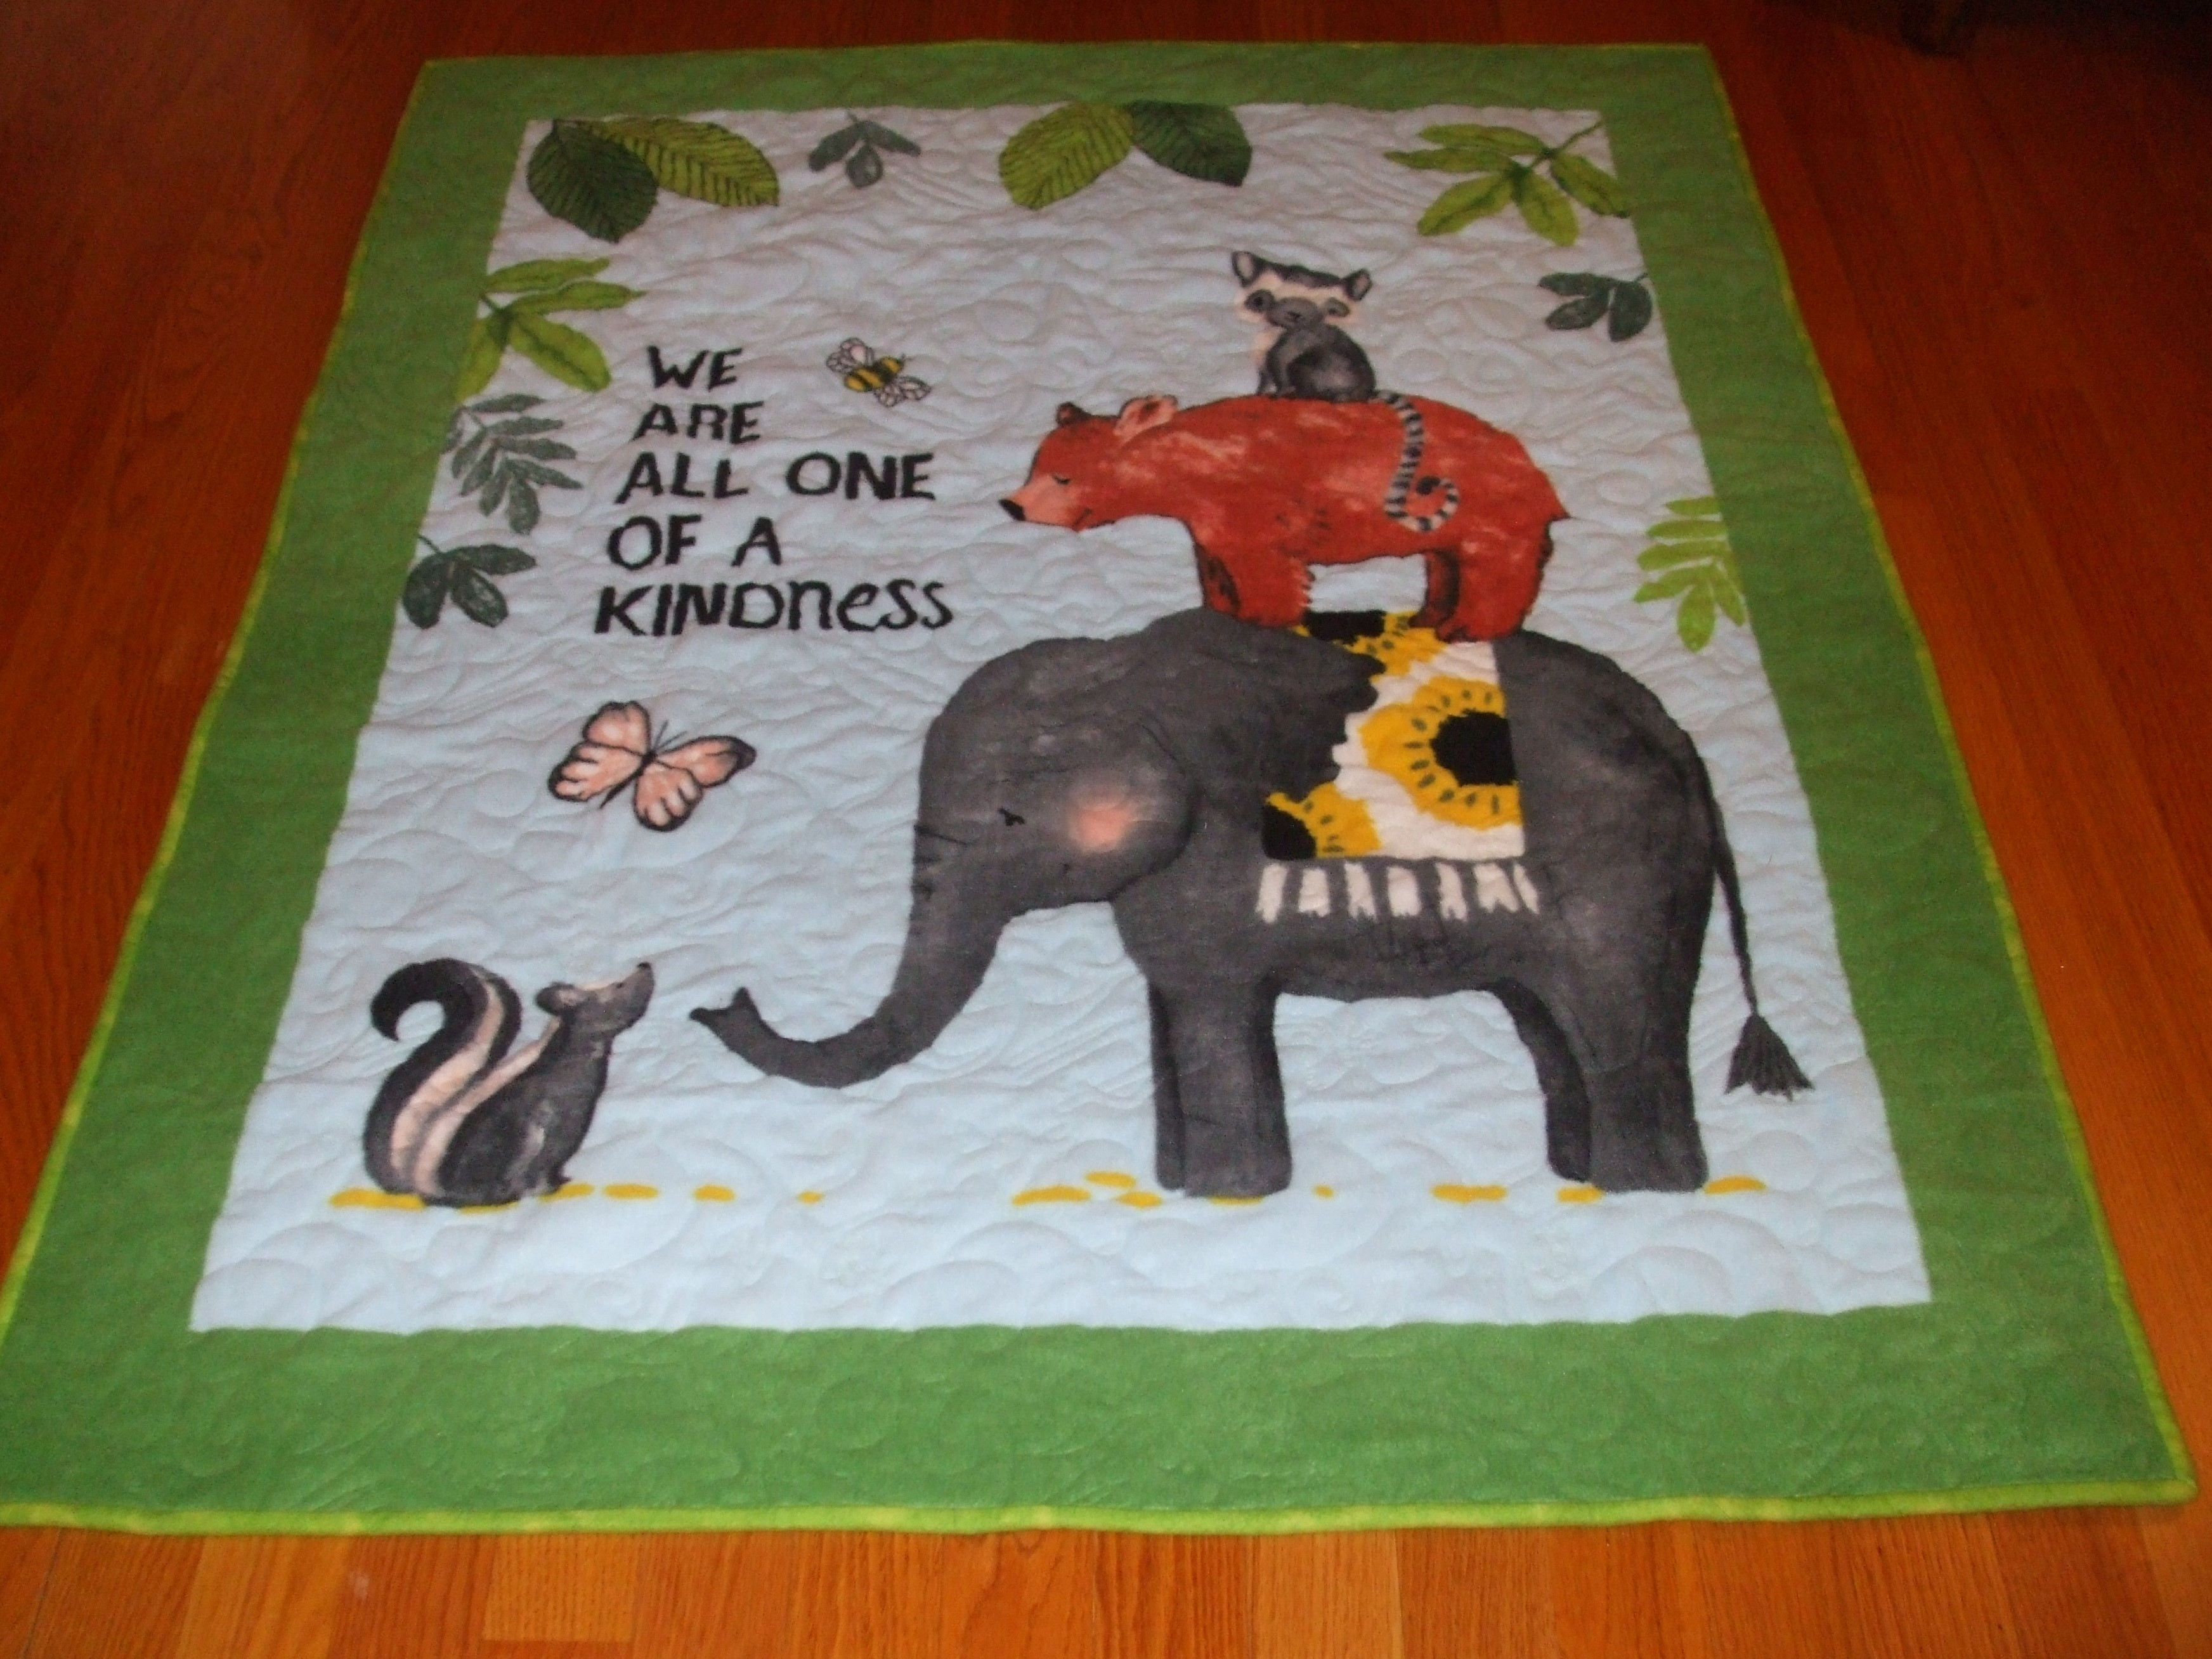 One of a Kindness hand made infant quilt